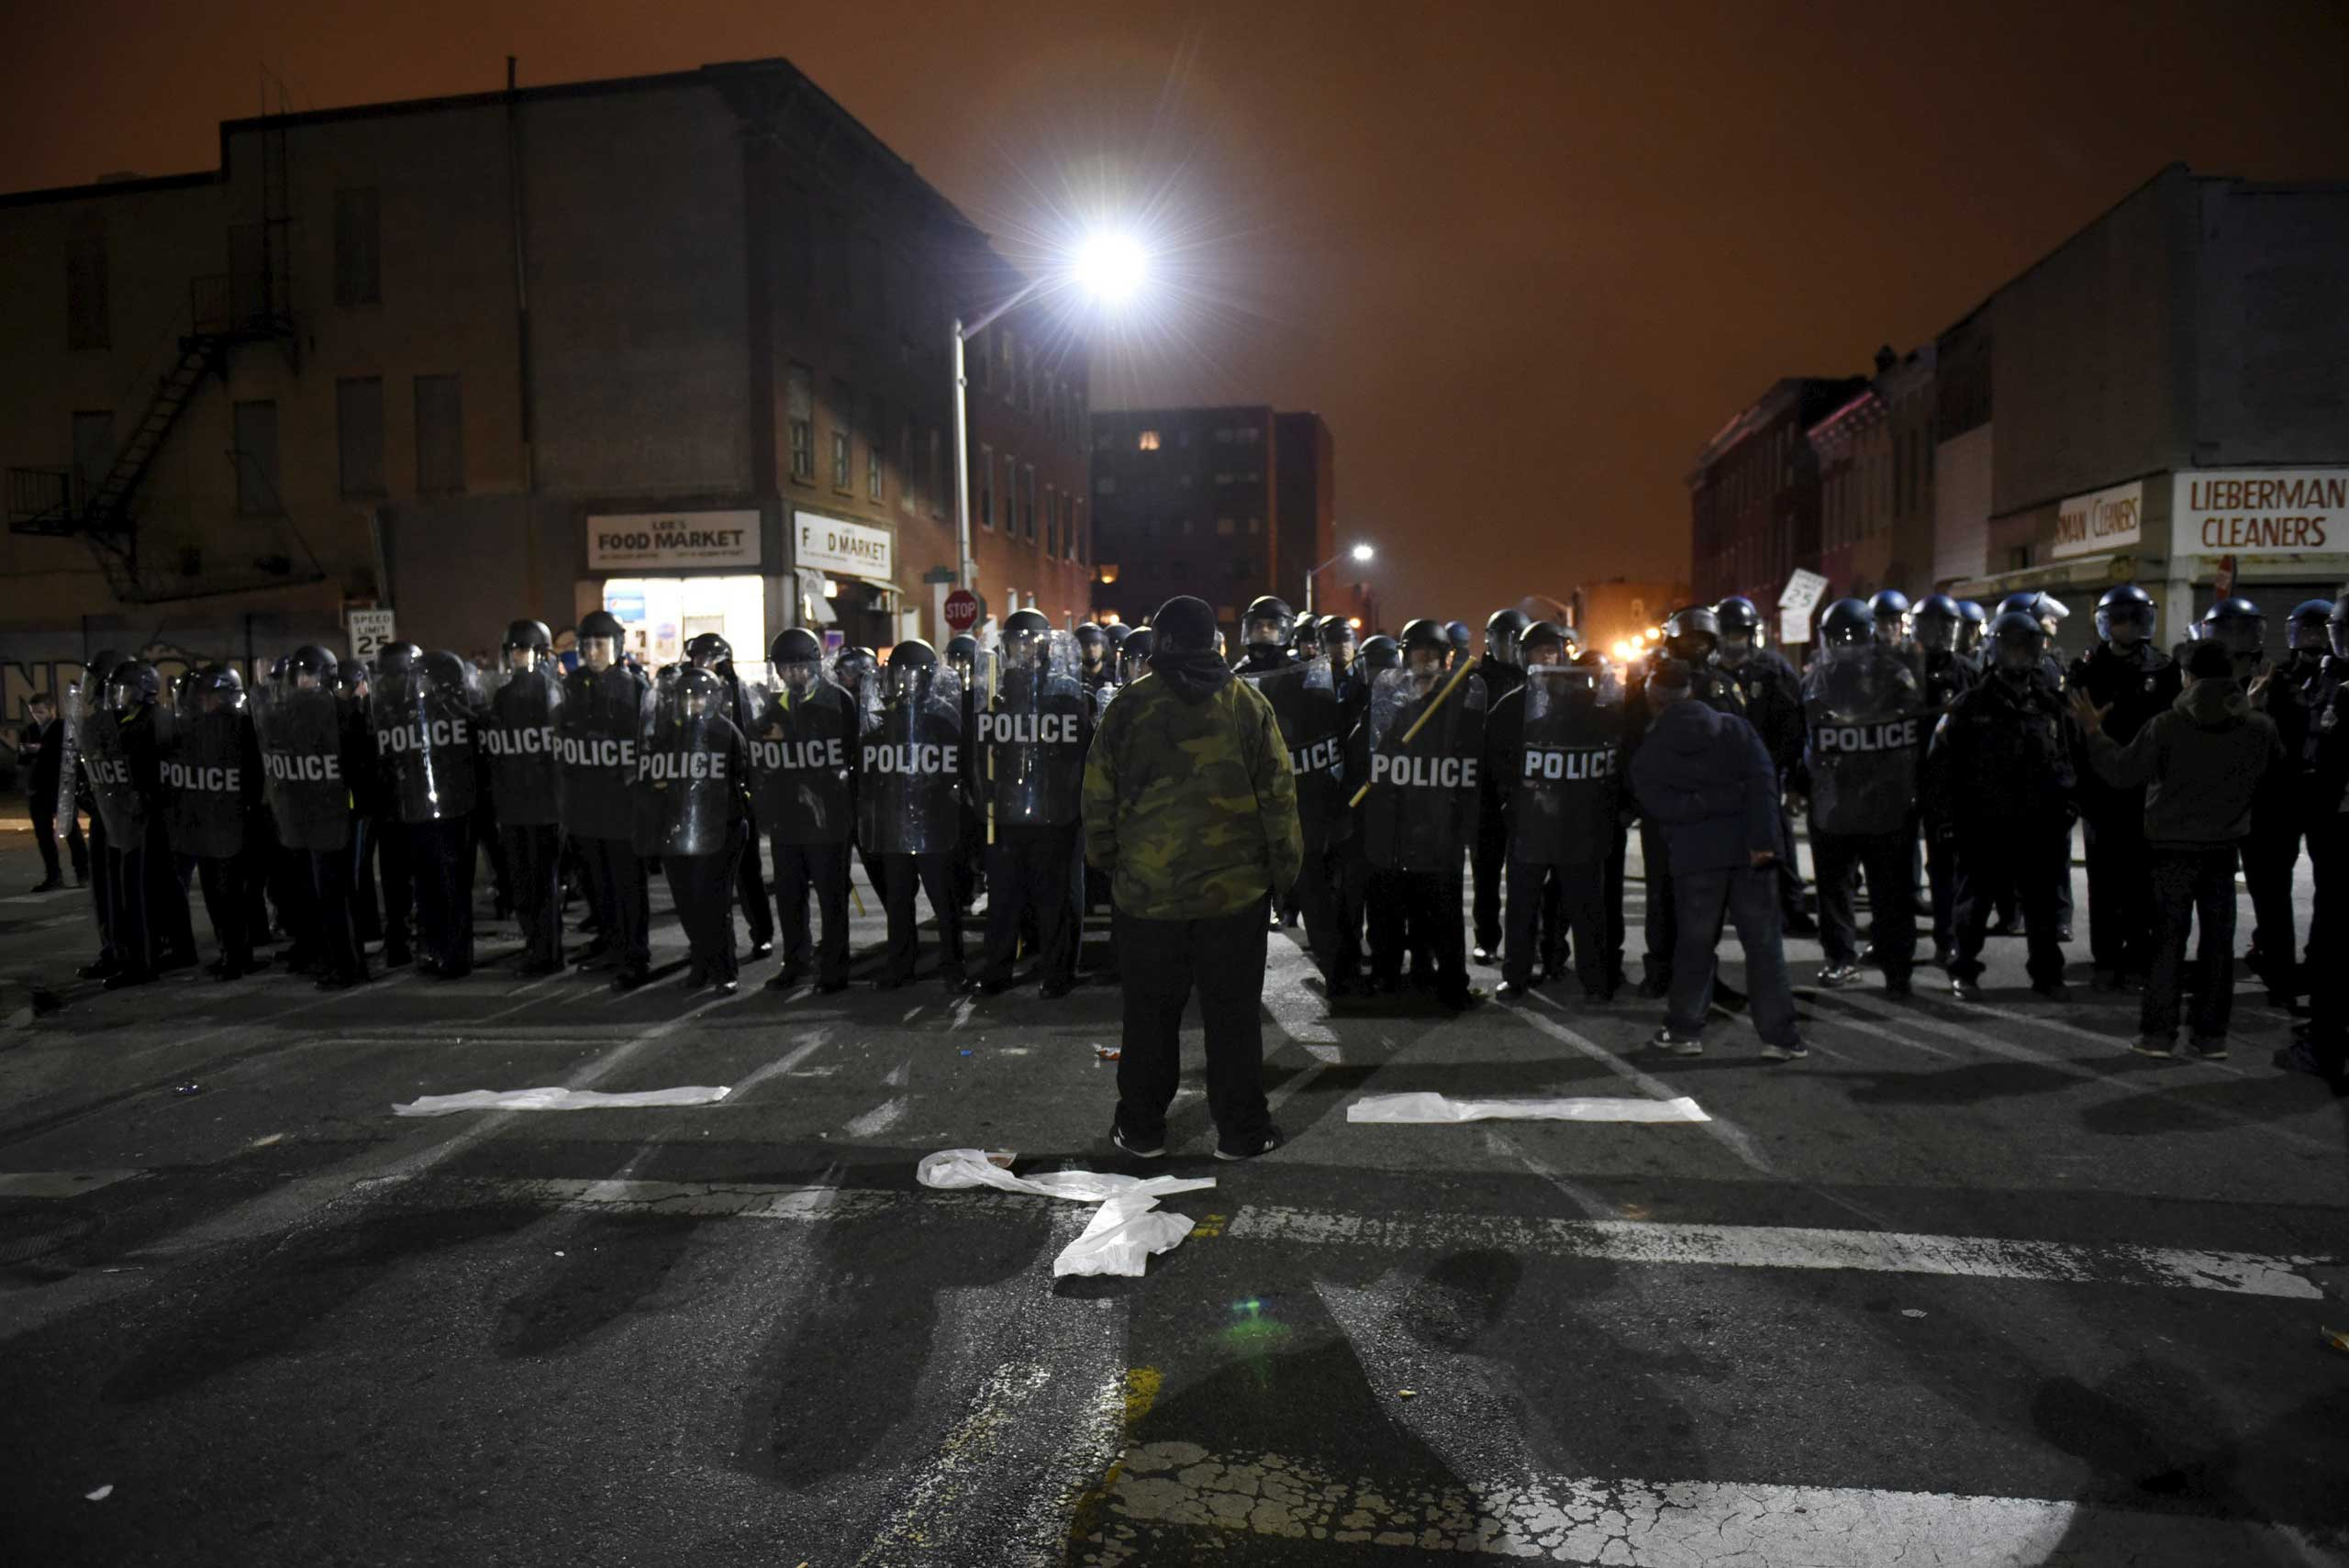 A demonstrator confronts law enforcement officers near Baltimore Police Department Western District in Baltimore on April 25, 2015.